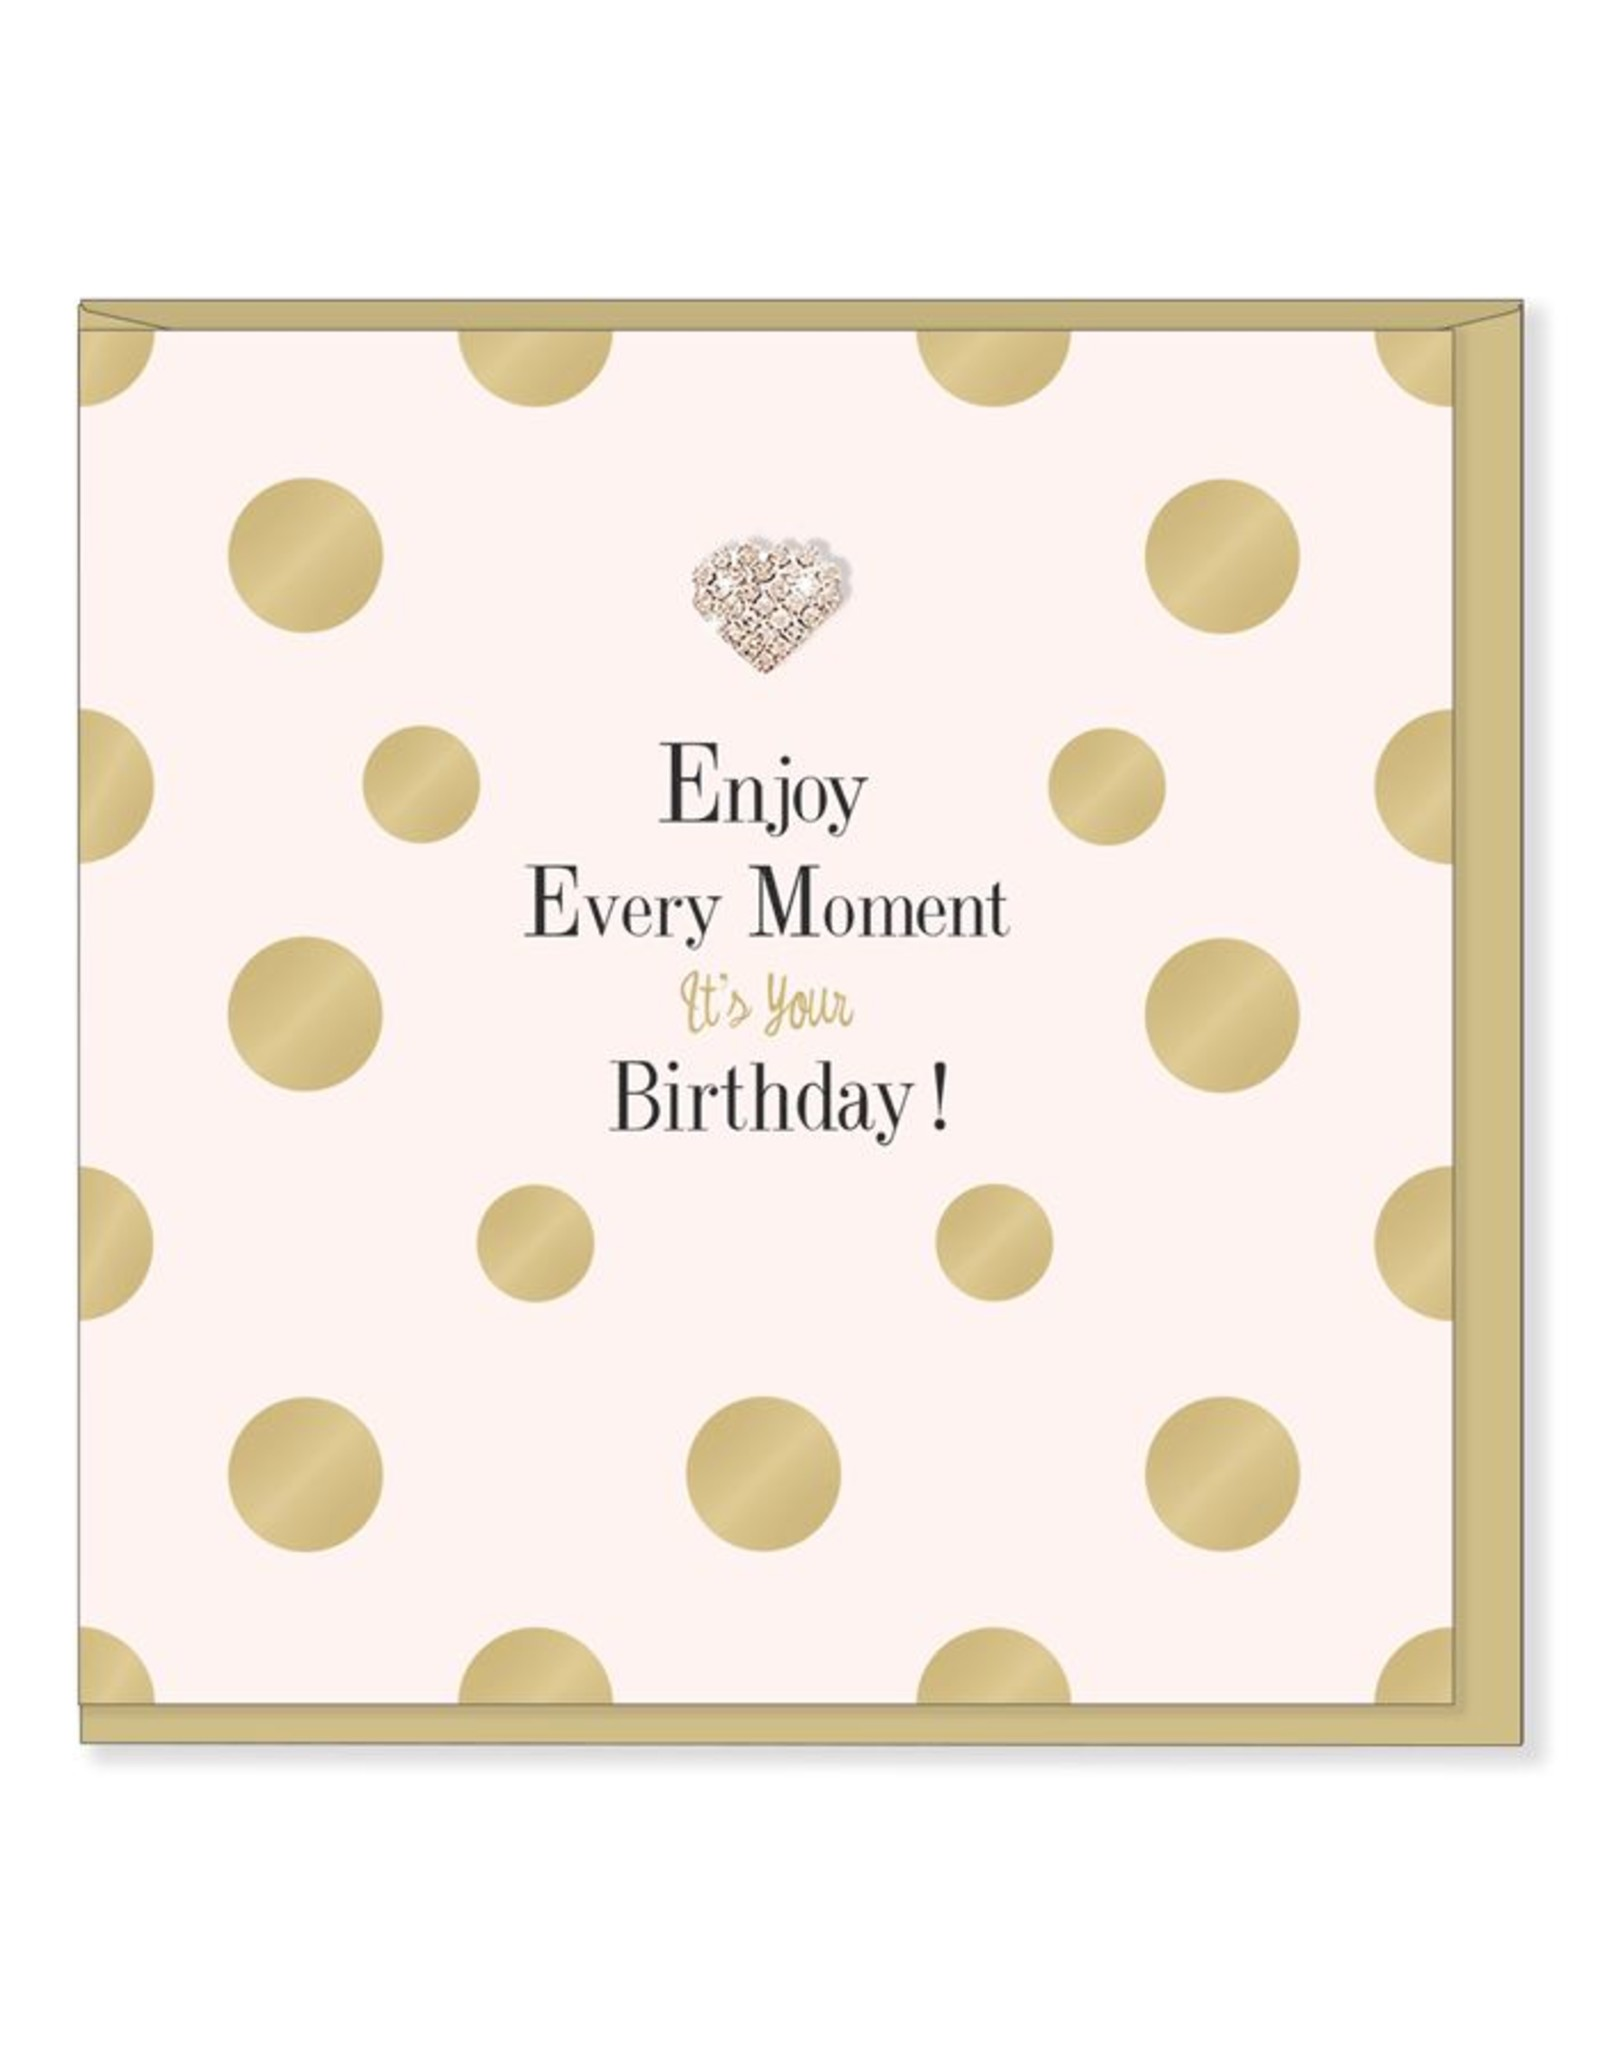 Hearts Design Wenskaart - Enjoy Every Moment - Birthday